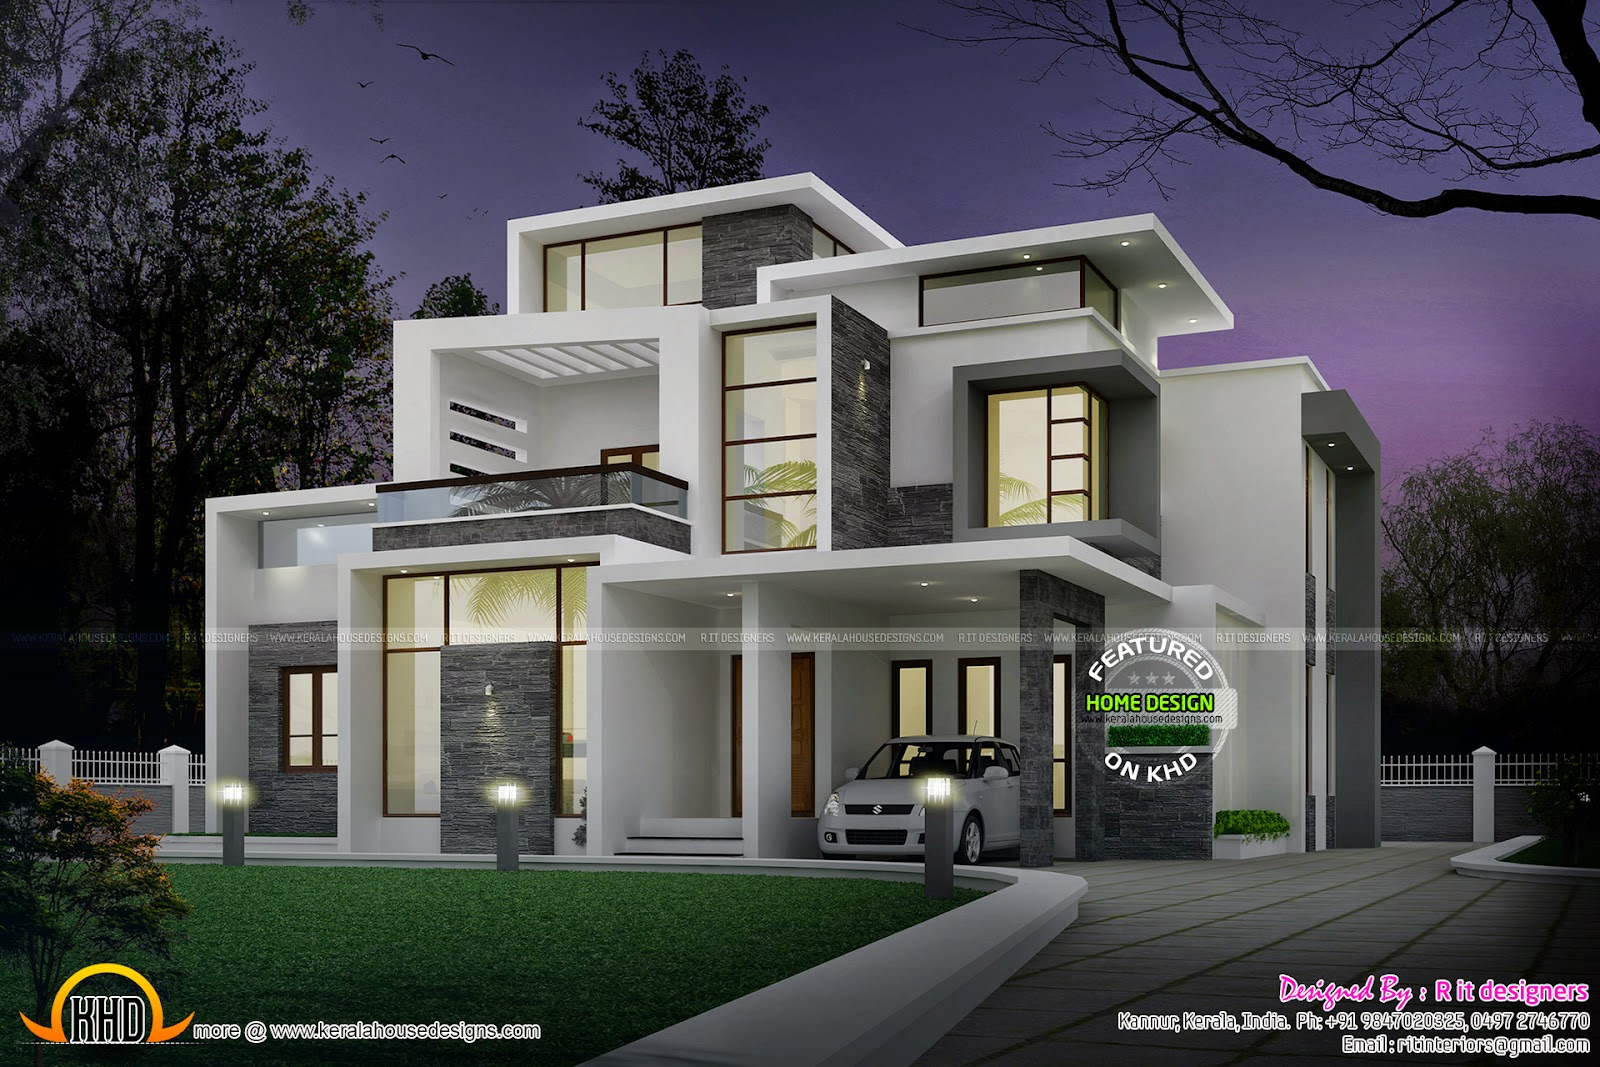 Grand contemporary home design kerala home design and for Small modern house plans two floors